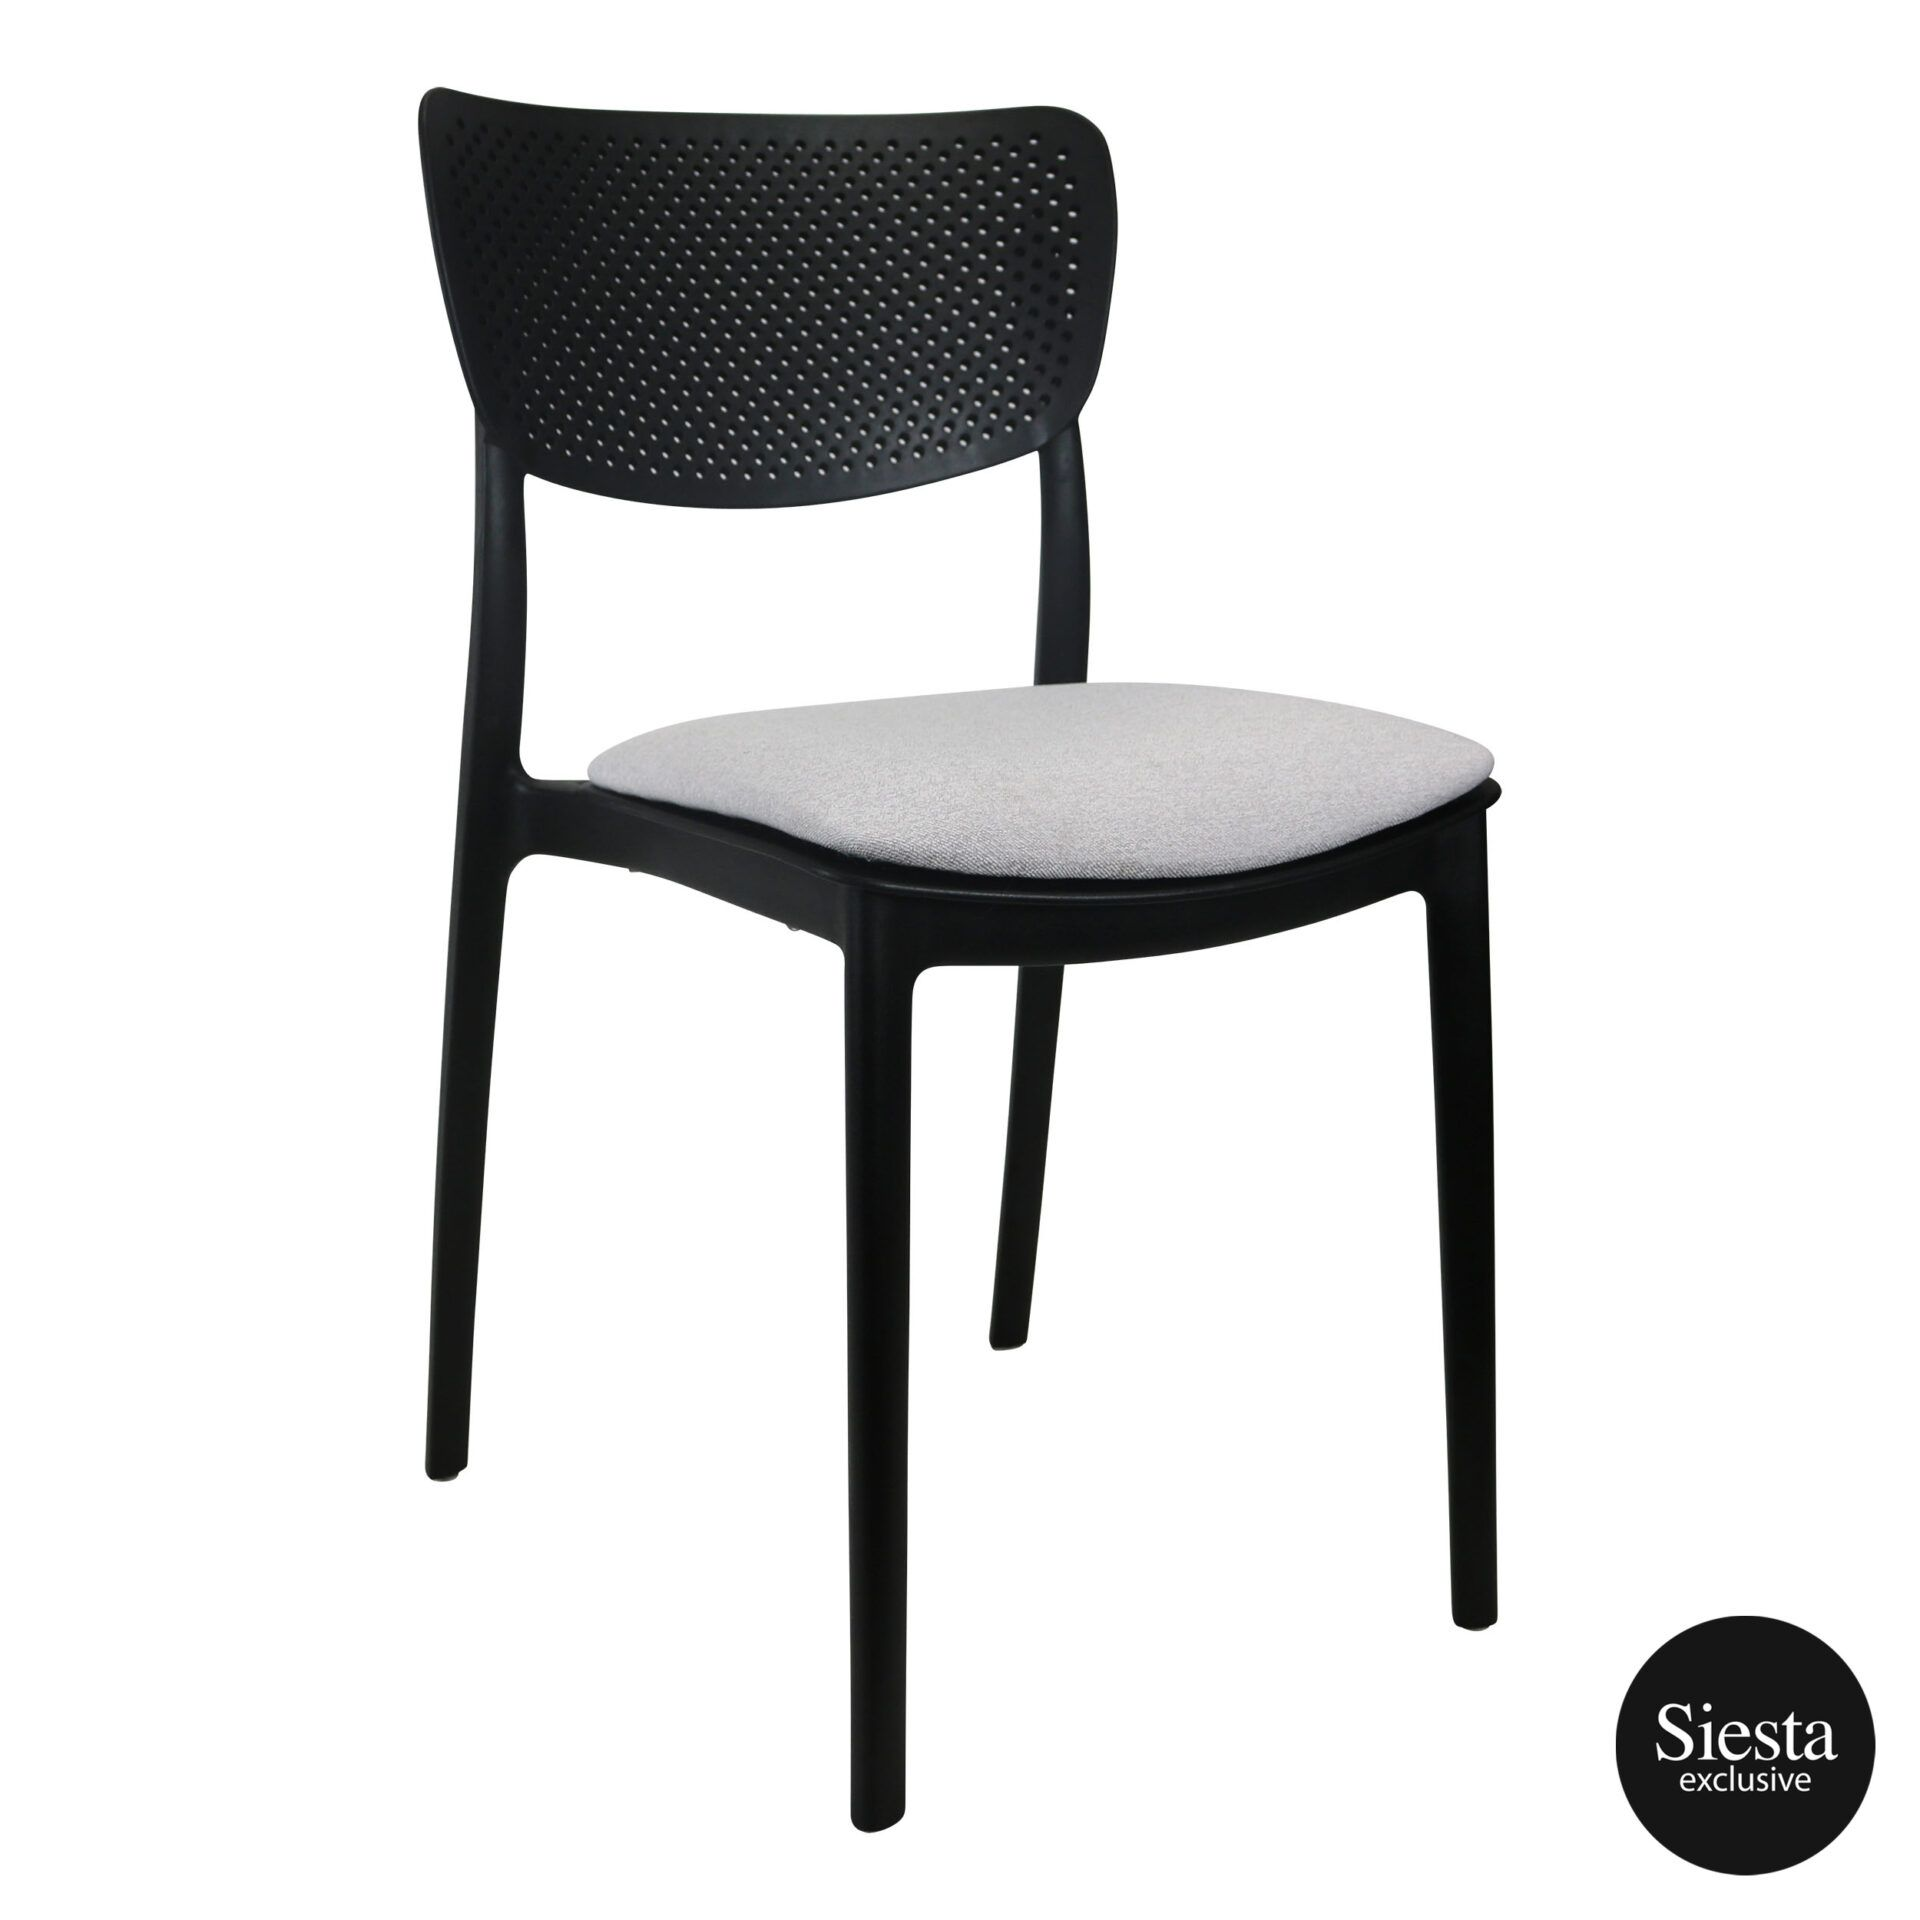 lucy chair black c1a